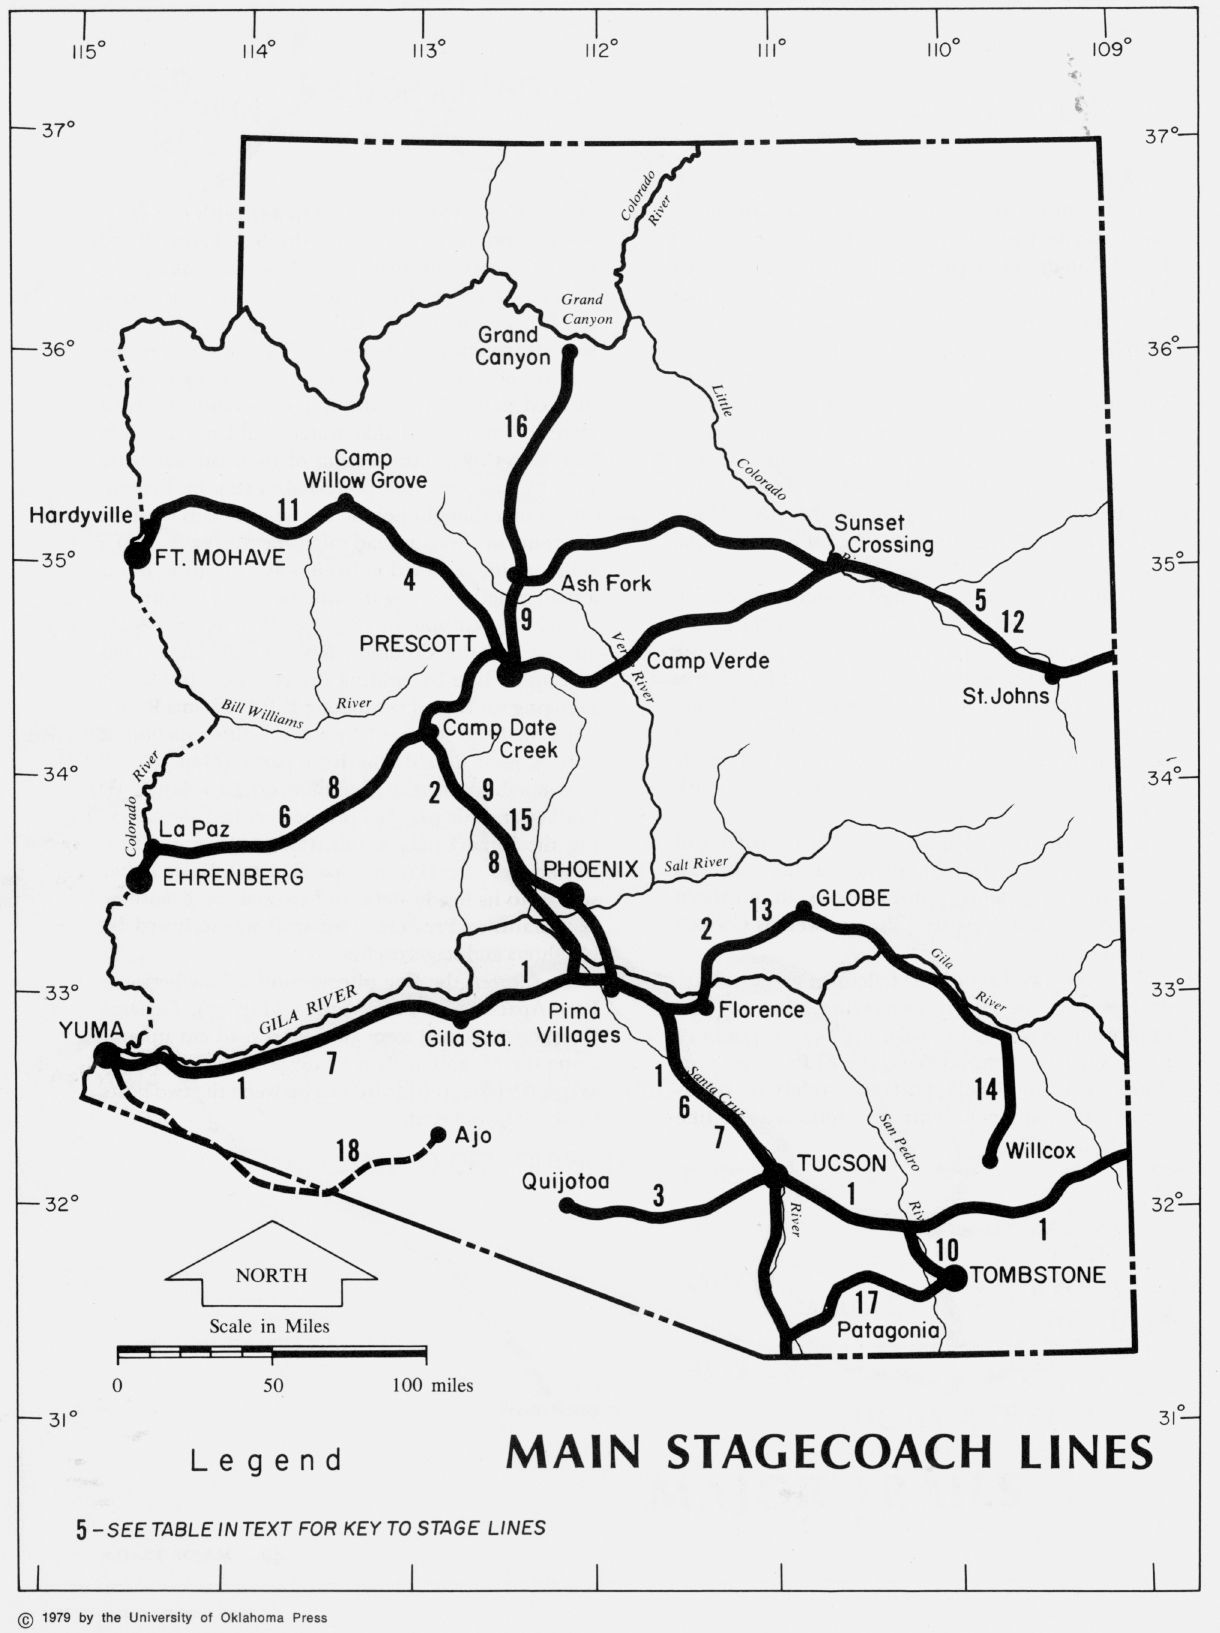 Map Of Arizona Historical Sites.Arizona Stagecoach Lines Date Unknown Ancient Maps In The State